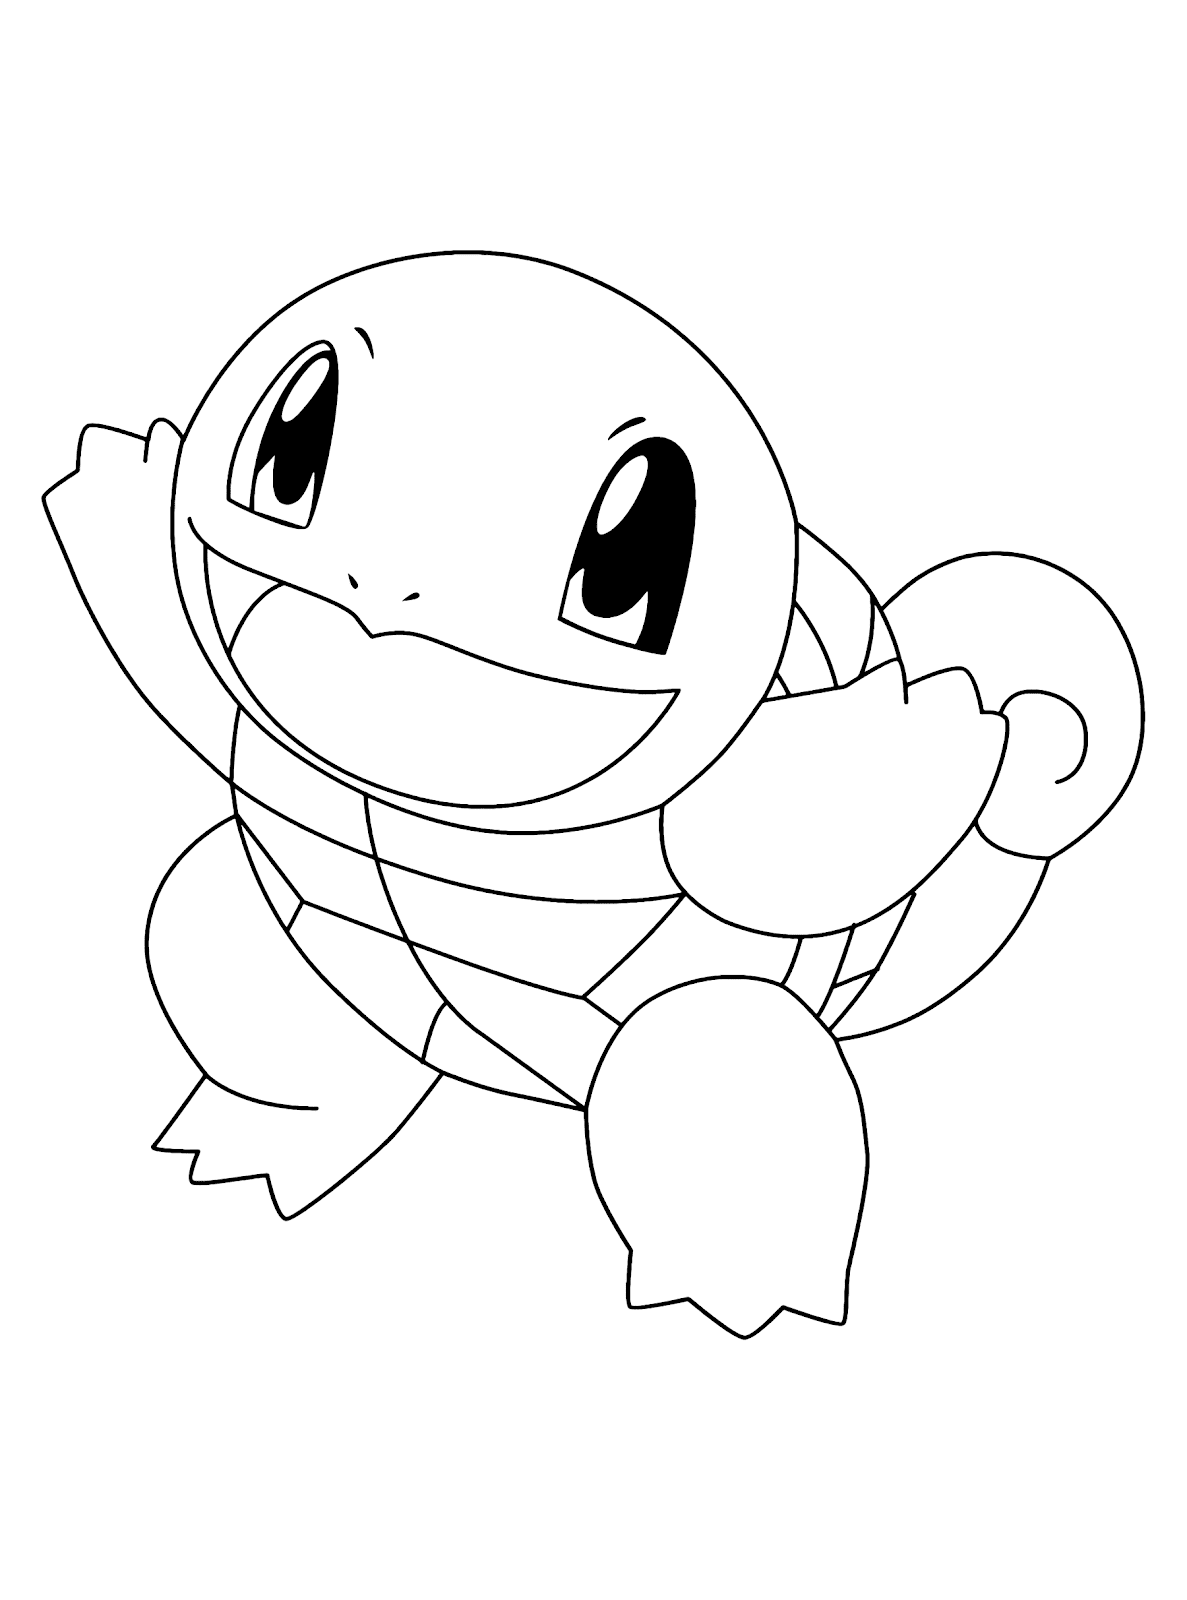 ty big eye coloring pages | New Squirtle Coloring Pages Download - Free Pokemon ...